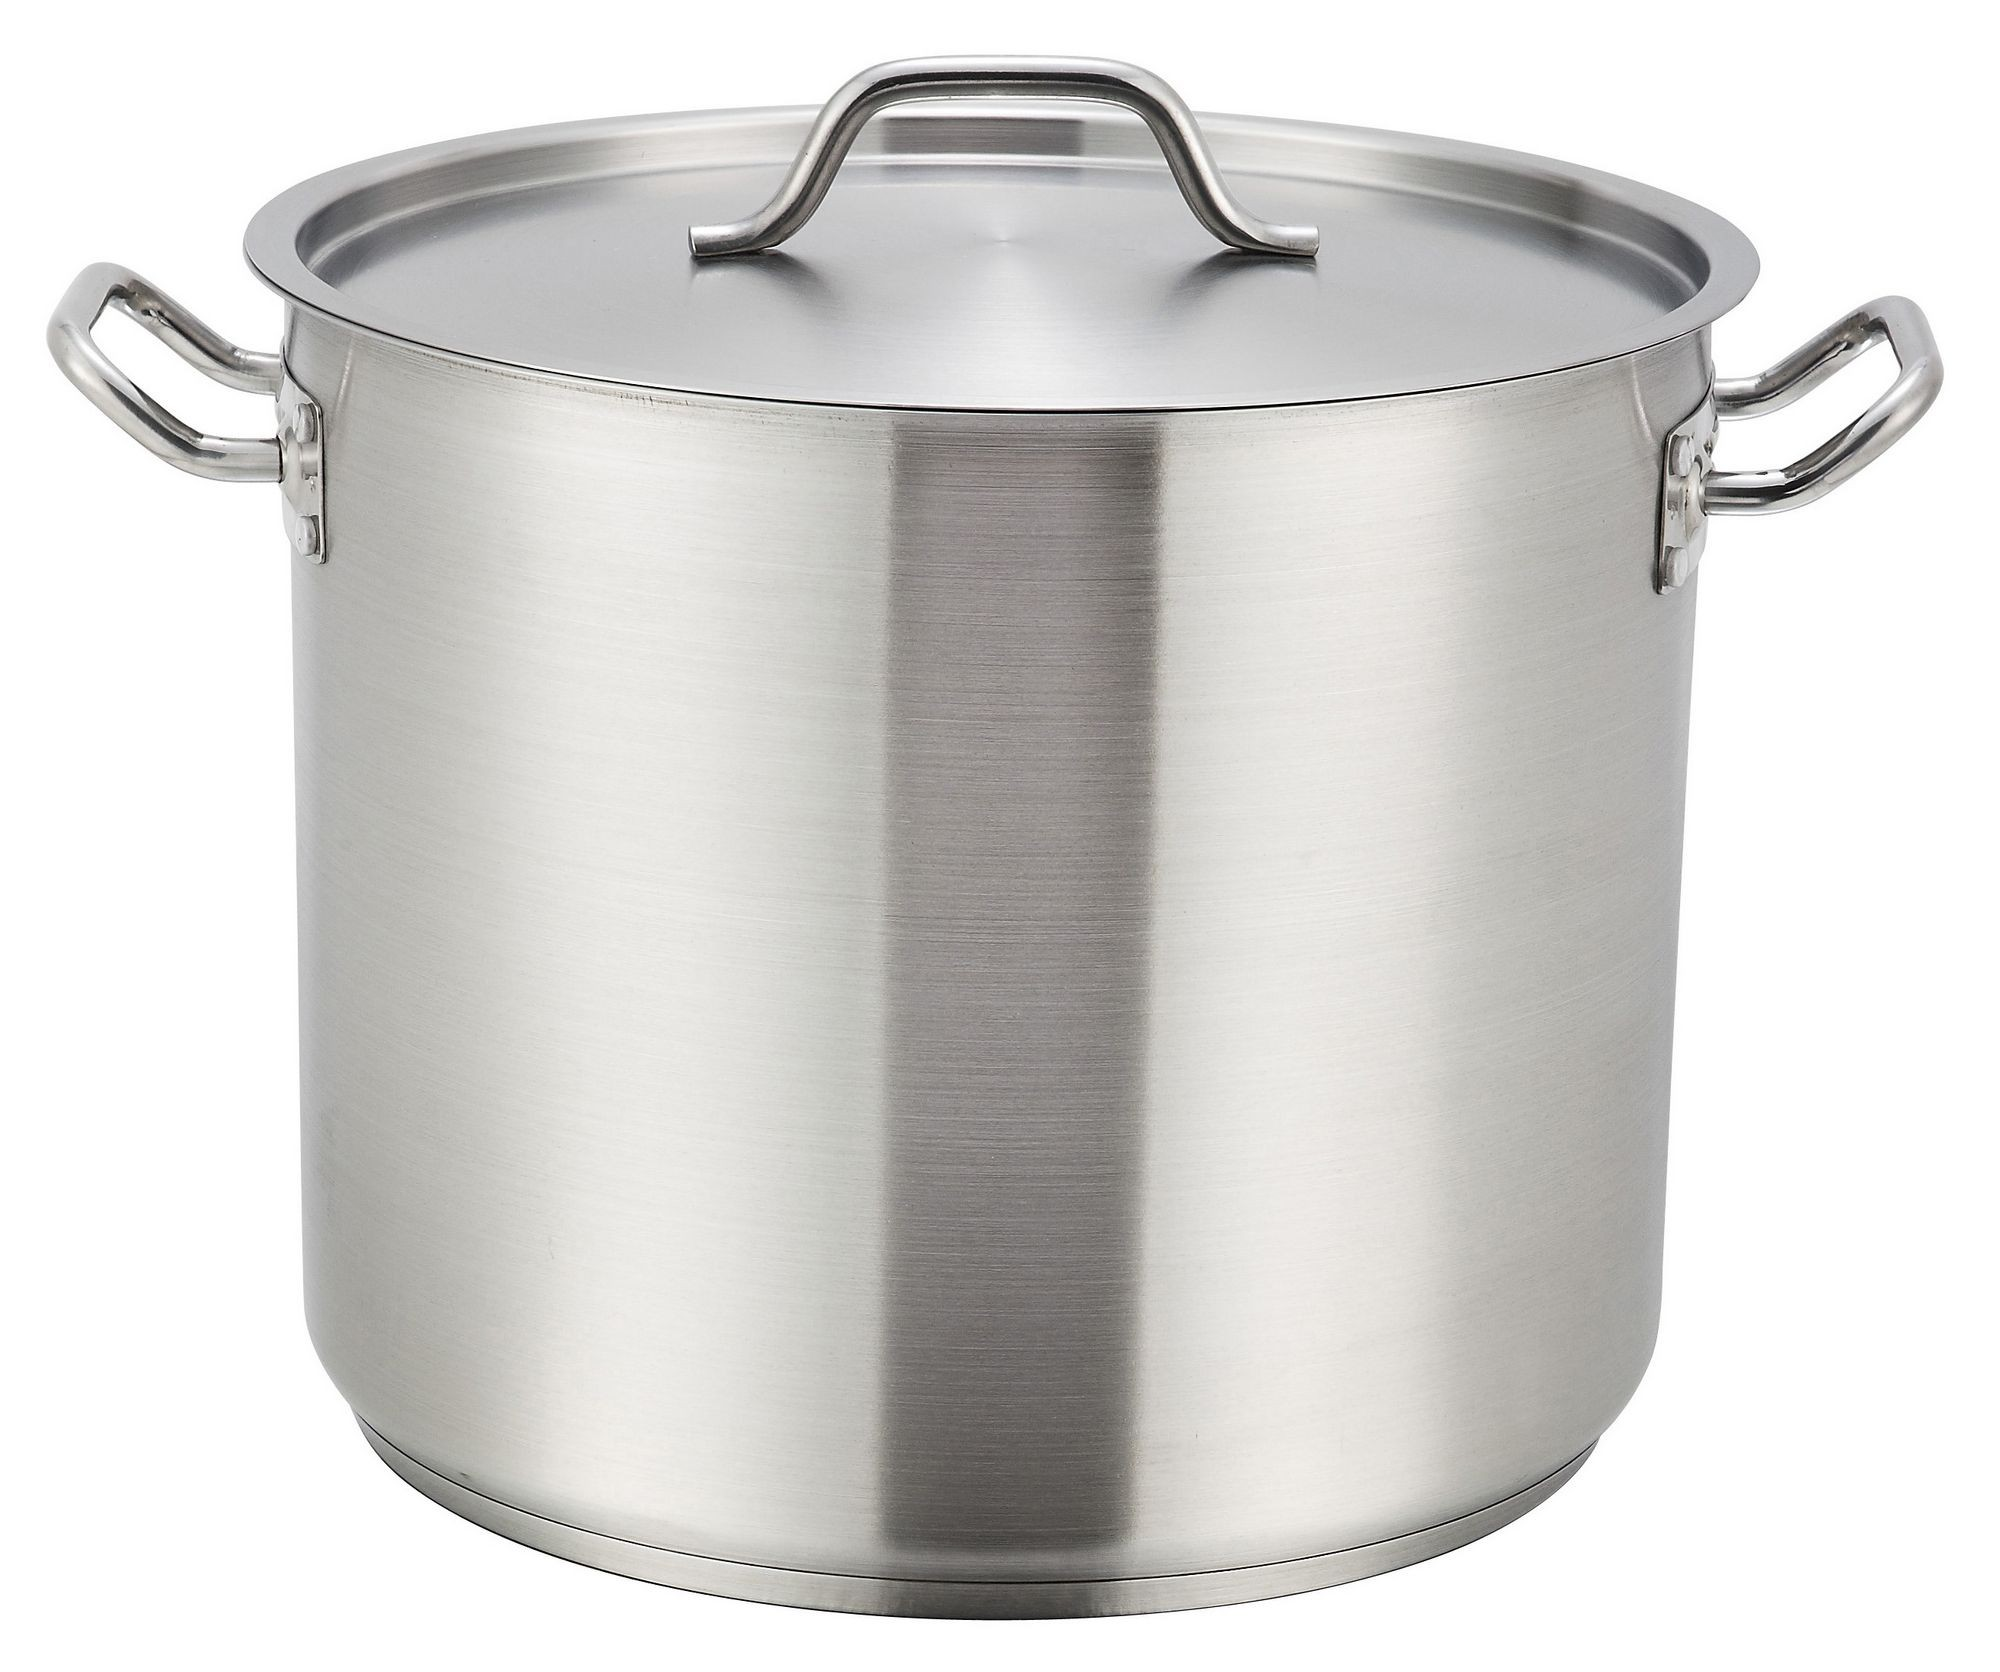 Winco SST-24 Premium Induction Stainless Steel 24 Qt. Stock Pot